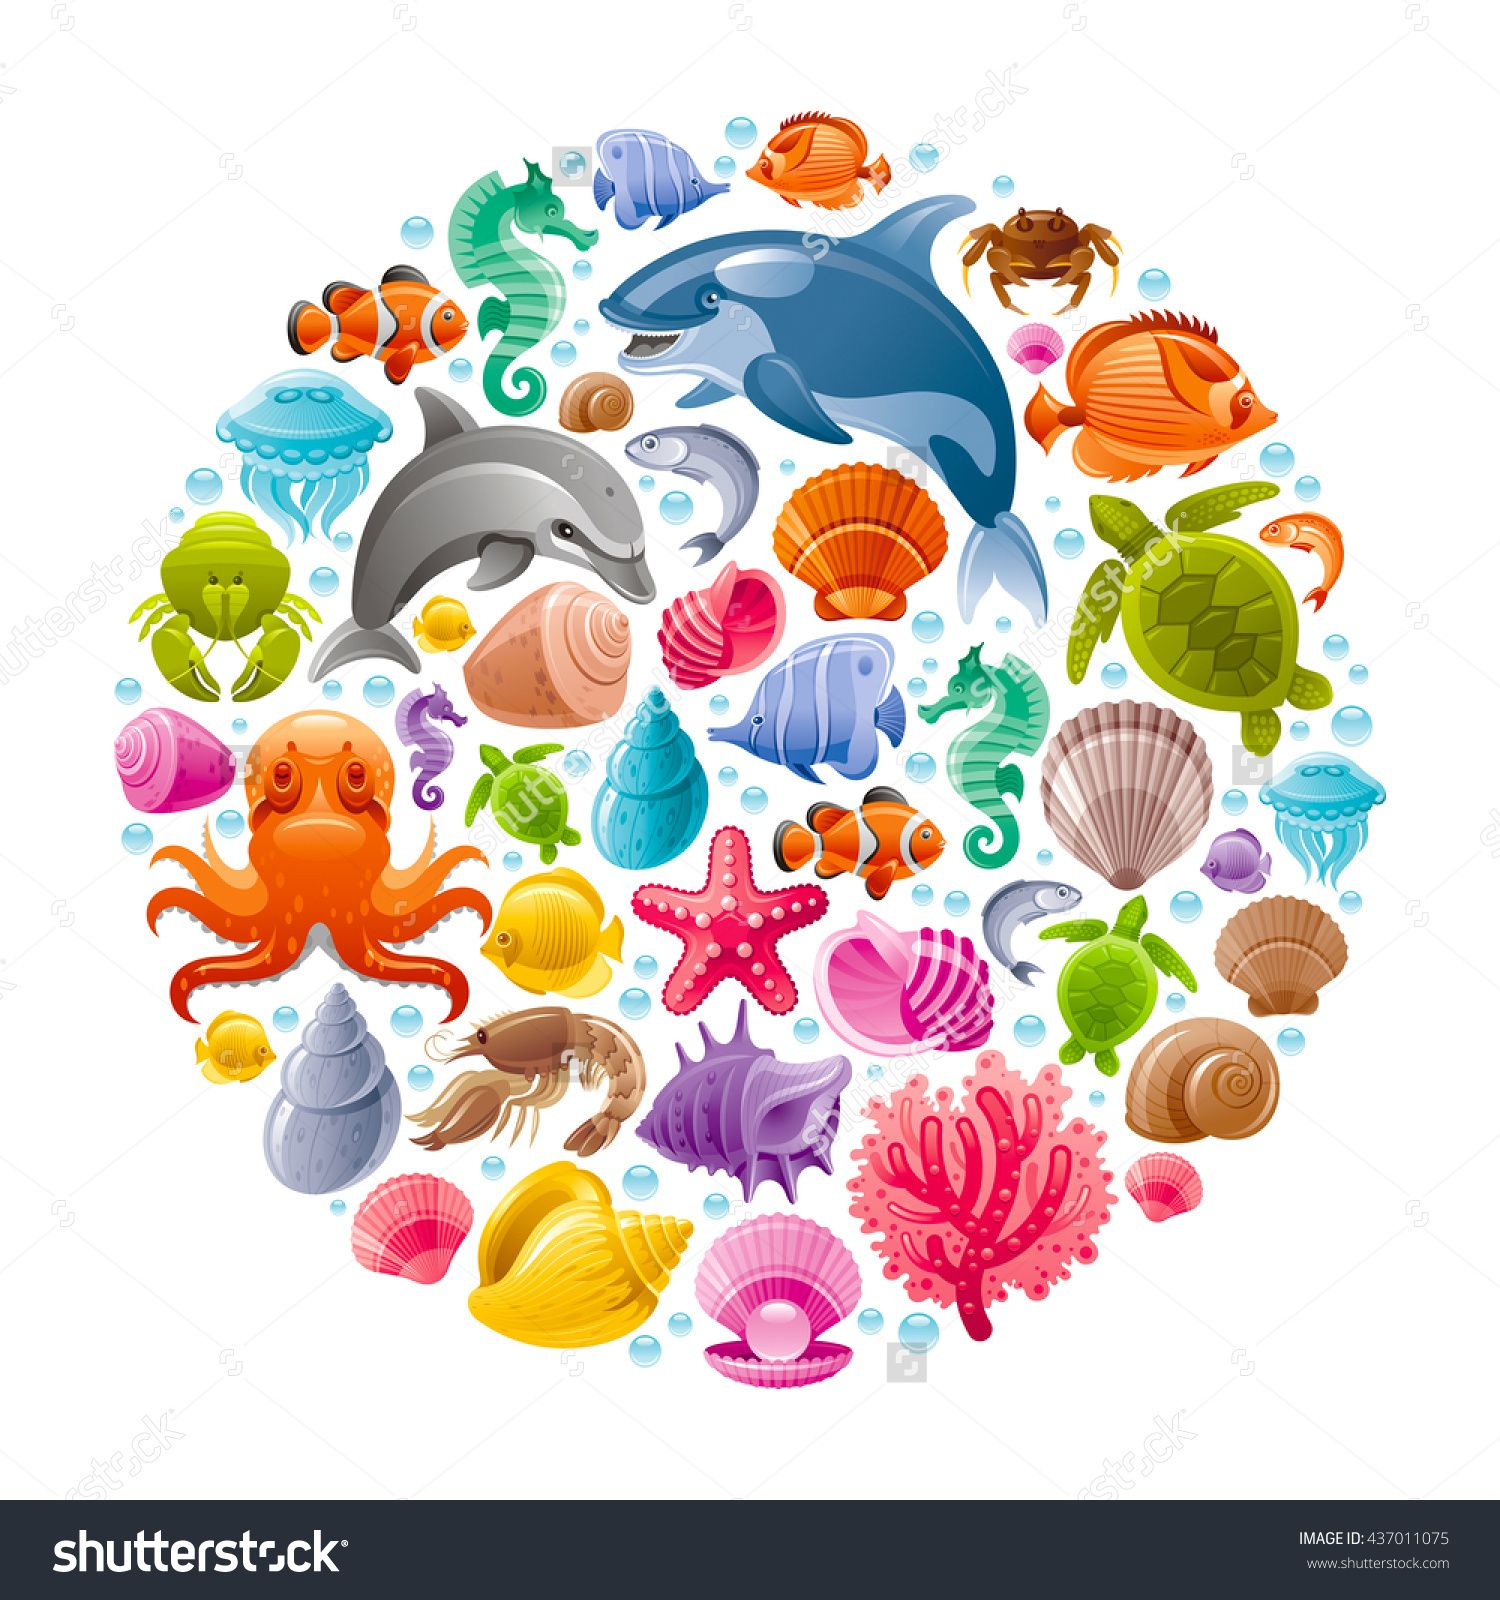 Summer beach scene vector stock vector colourbox - Dolphin Killer Whale Starfish Coral Oyster Pearl Butterfly Fish Tropical Shells Sea Horse Octopus Sea Turtle And More Marine Icons Stock Vector